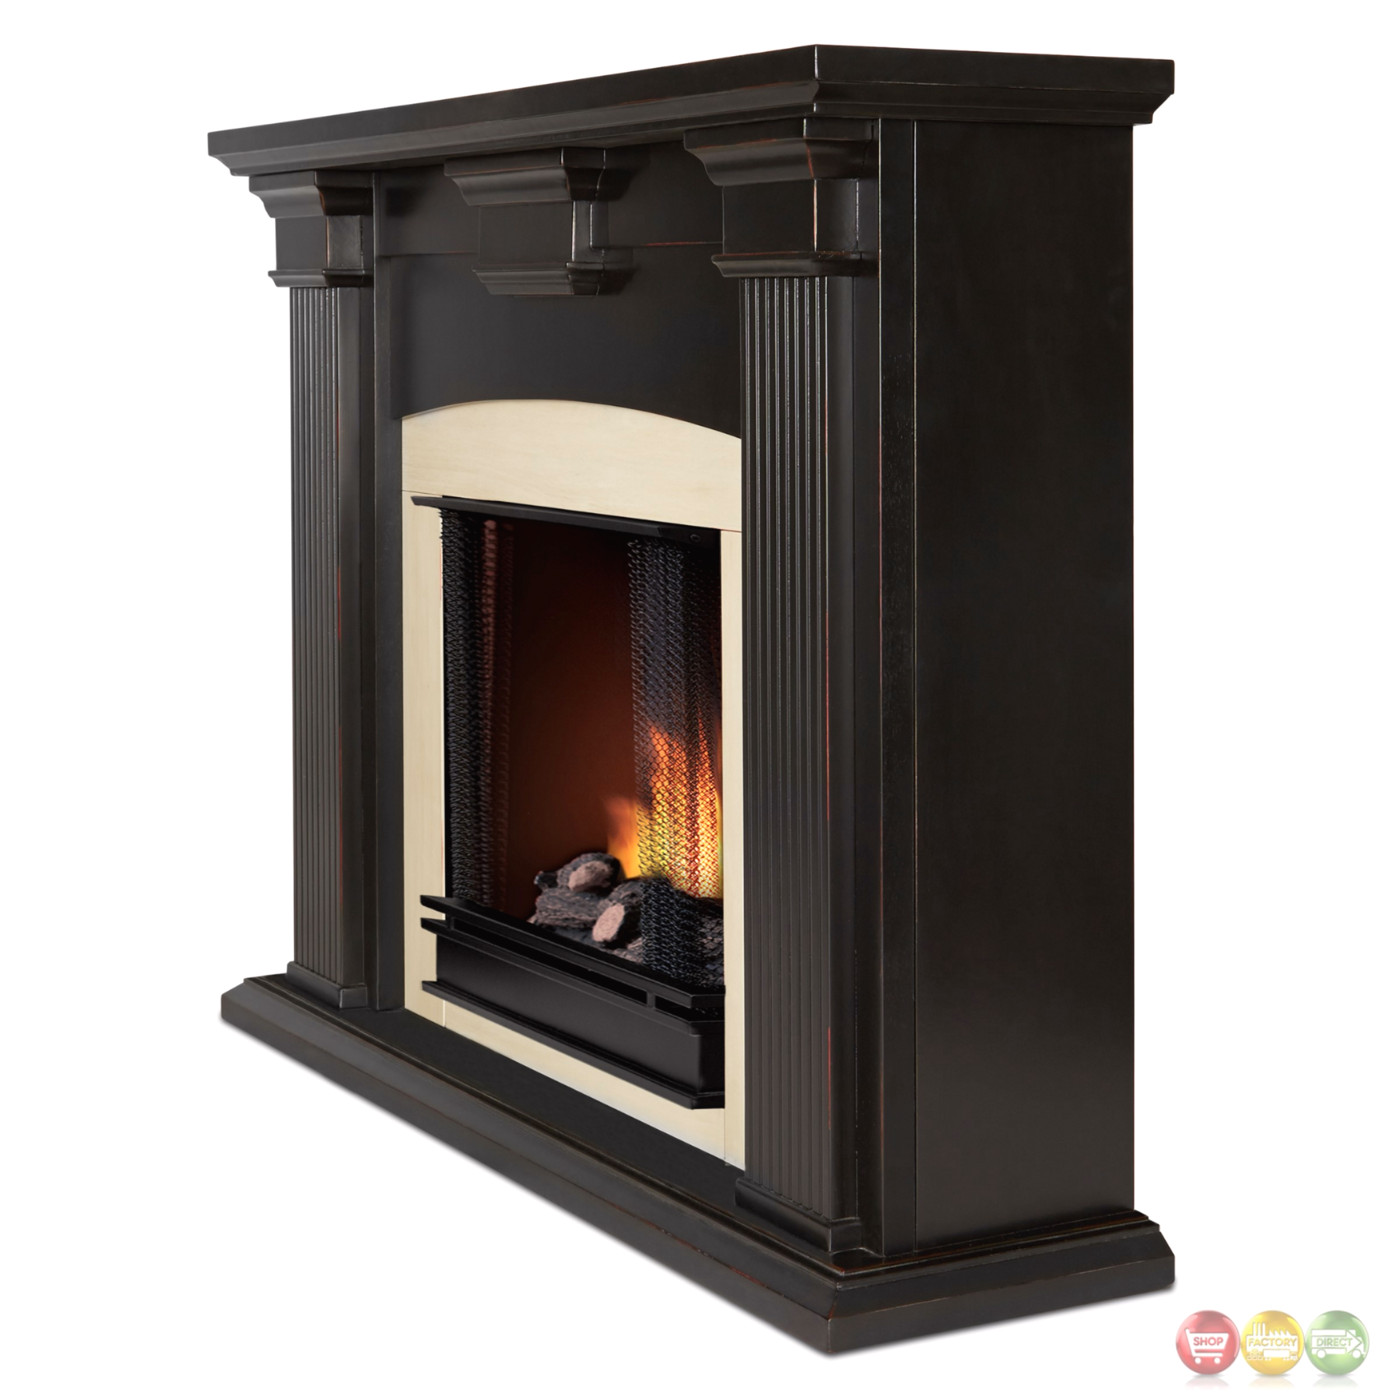 Antique White Gel Fireplace Adelaide Ventless Gel Fireplace In Antique Blackwash With